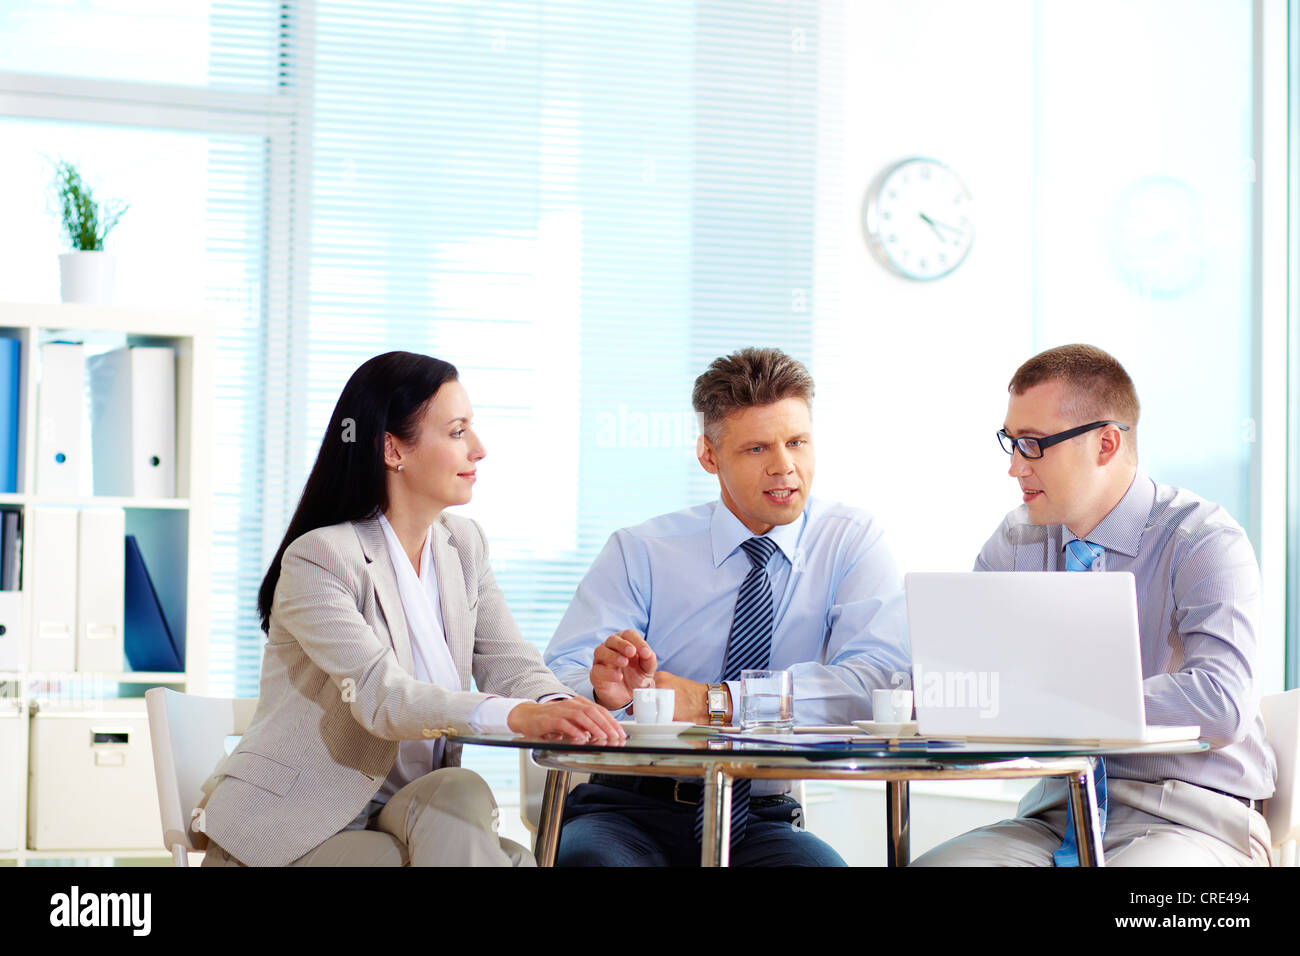 Business team being in the midst of discussion, copy-space provided - Stock Image